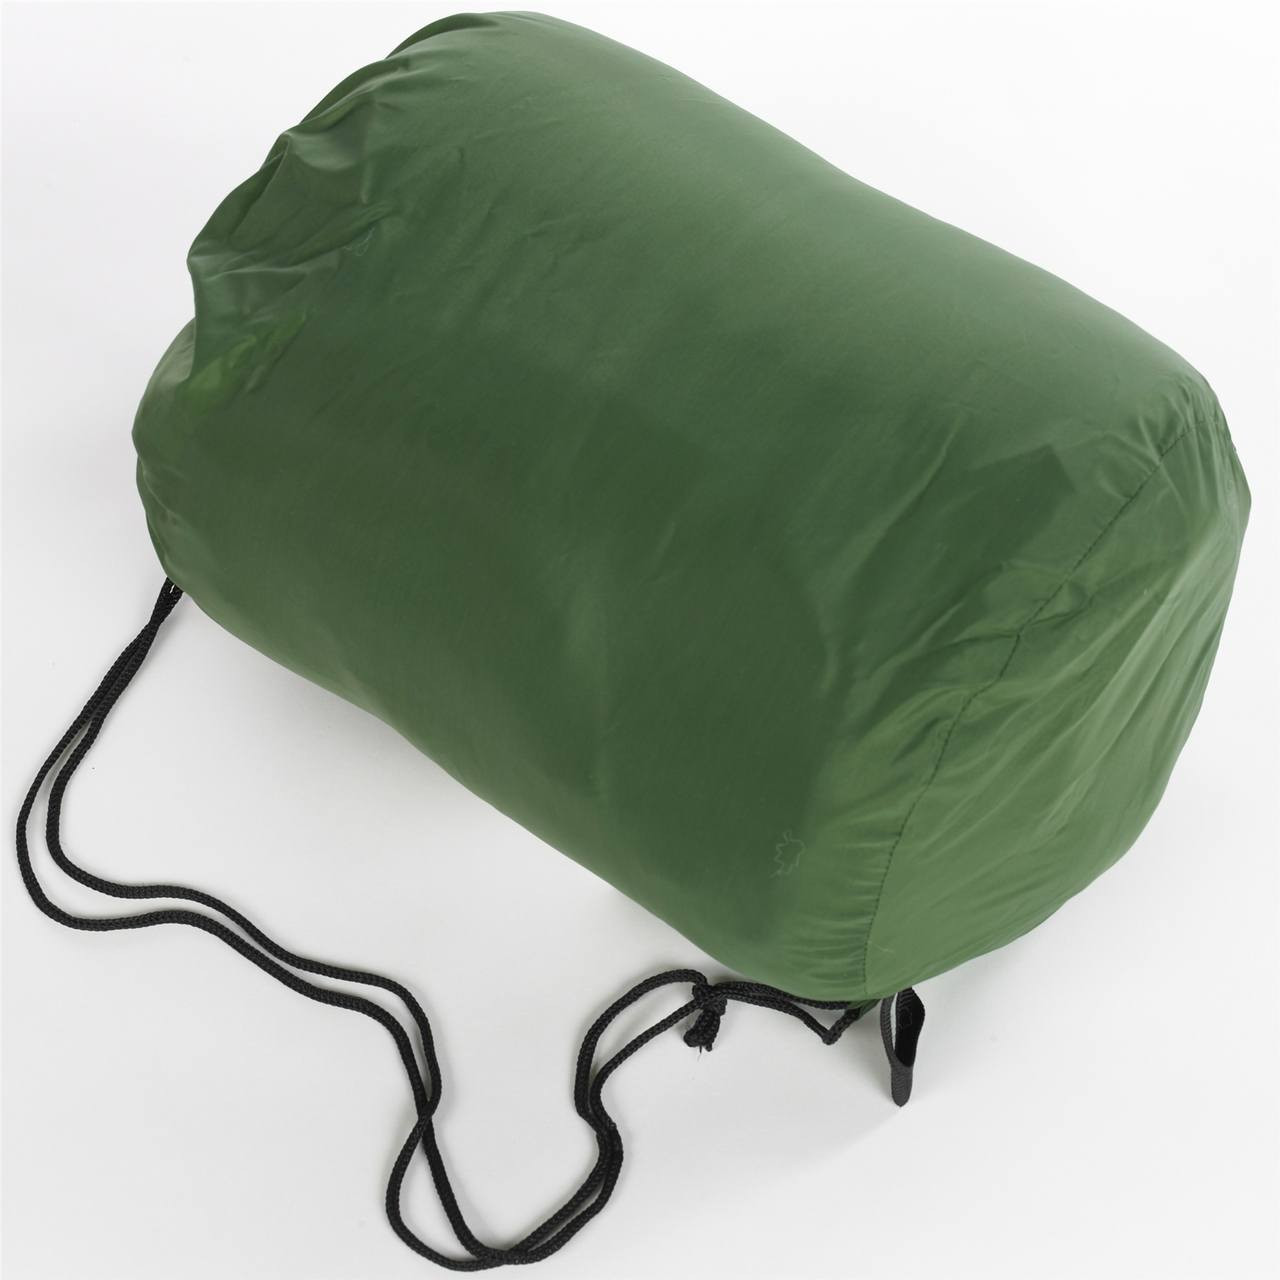 Wenzel Kids Backyard 30 degree sleeping bag rolled and stored in the green storage bag